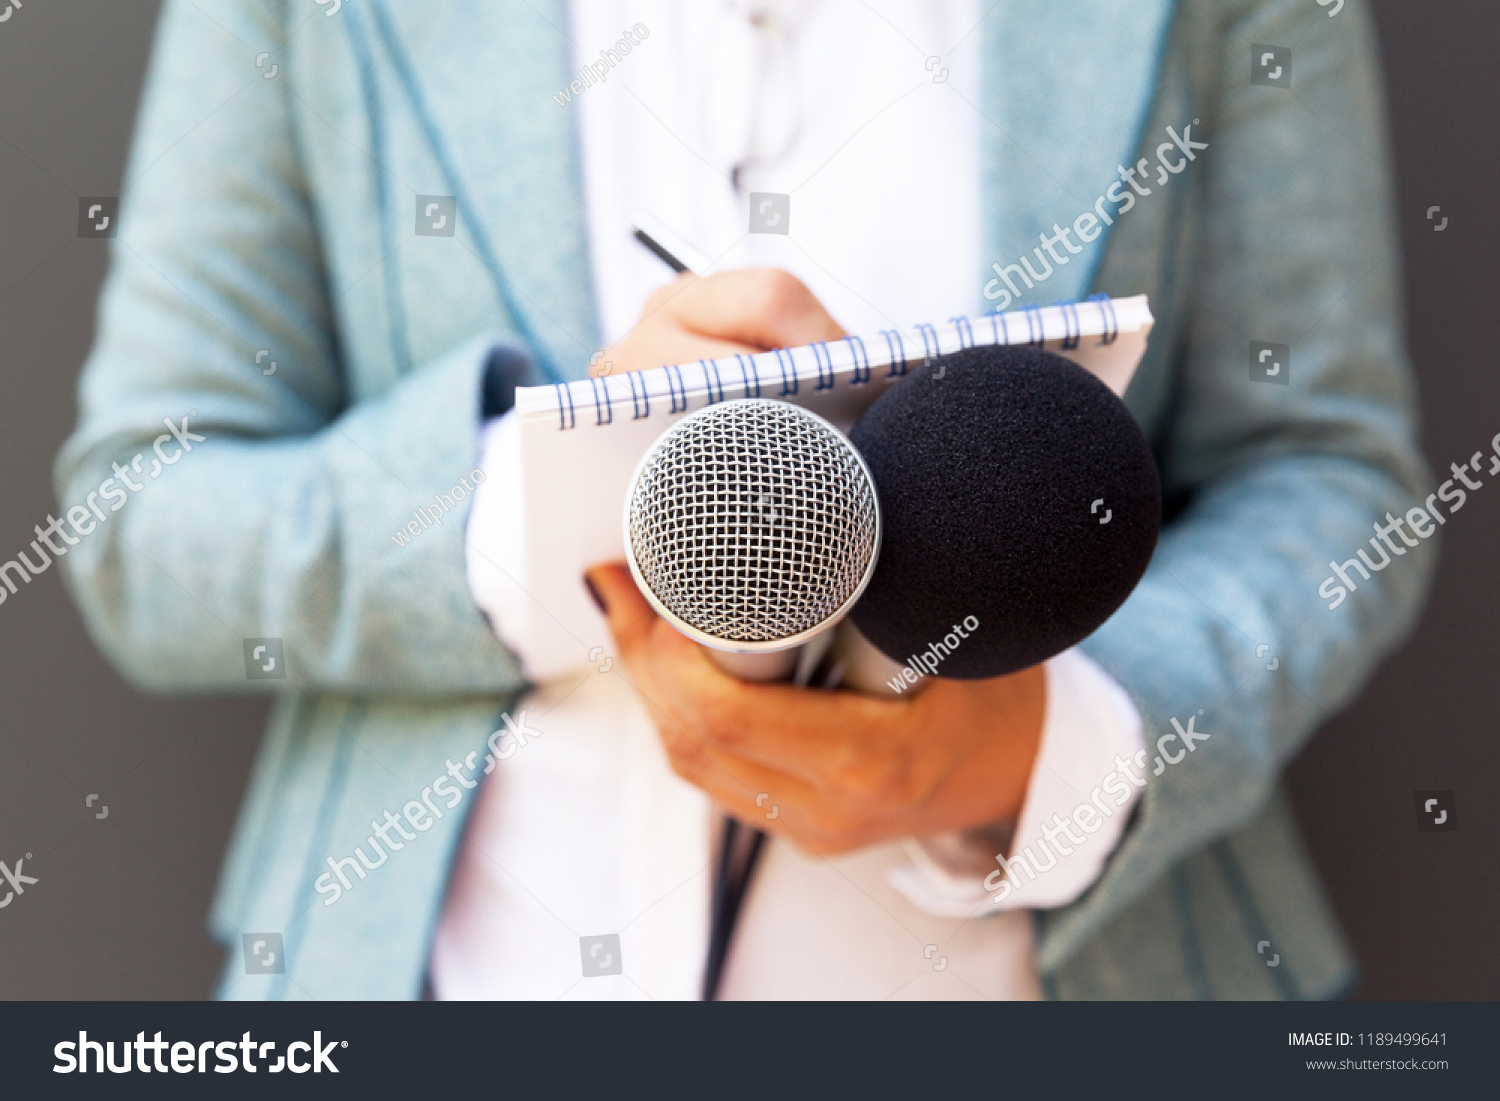 Female reporter at press conference, writing notes, holding microphone #1189499641